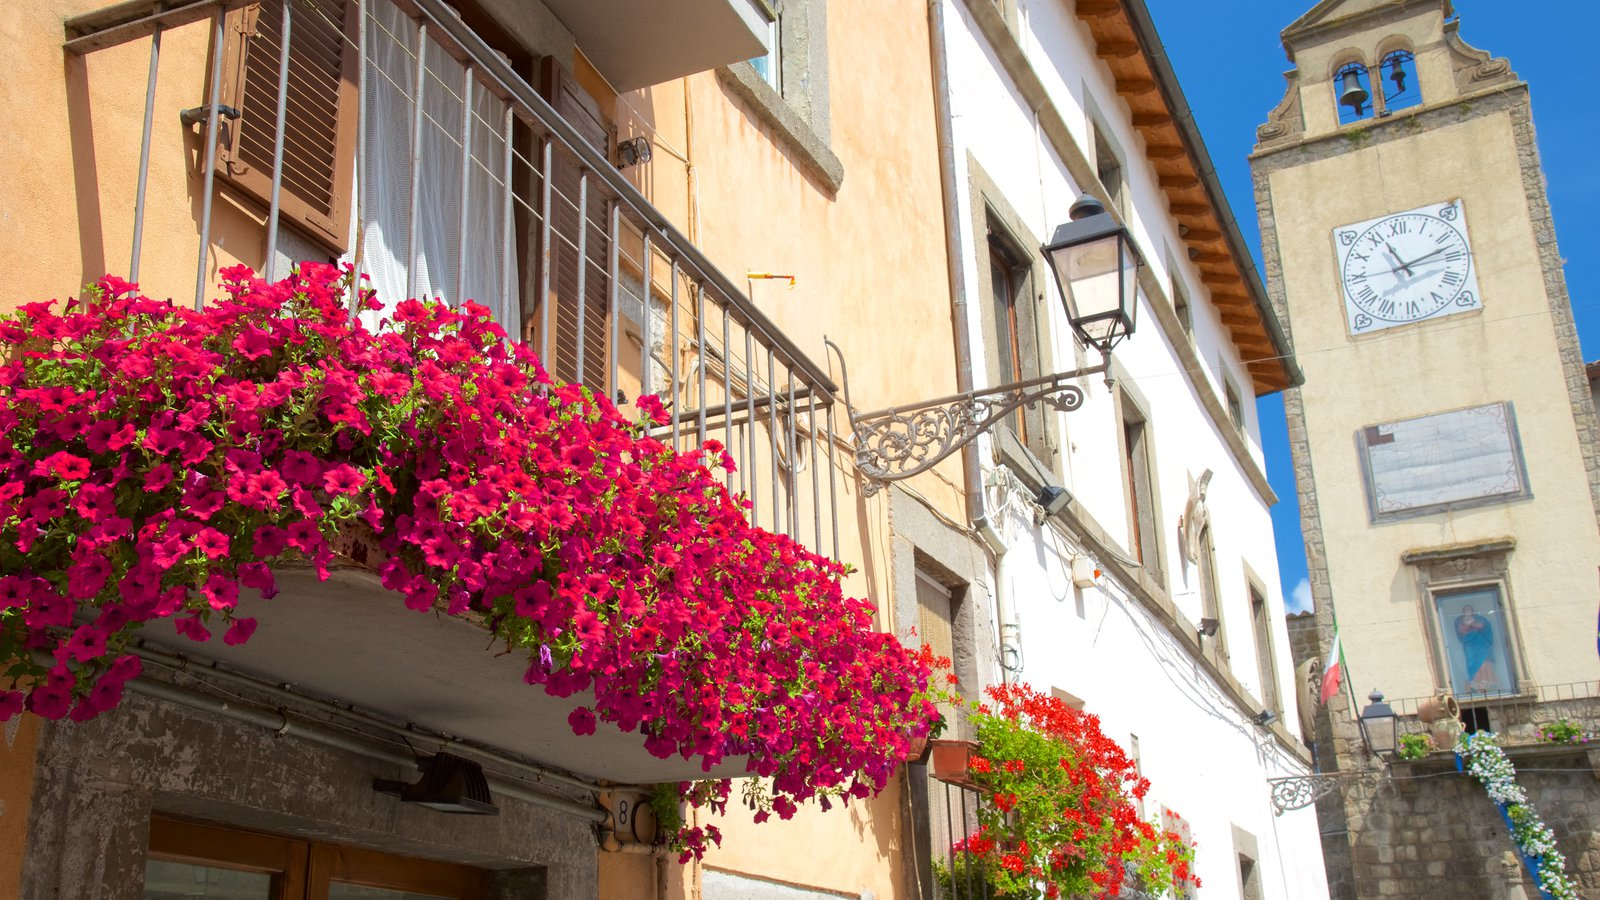 Vitorchiano showing flowers and heritage architecture